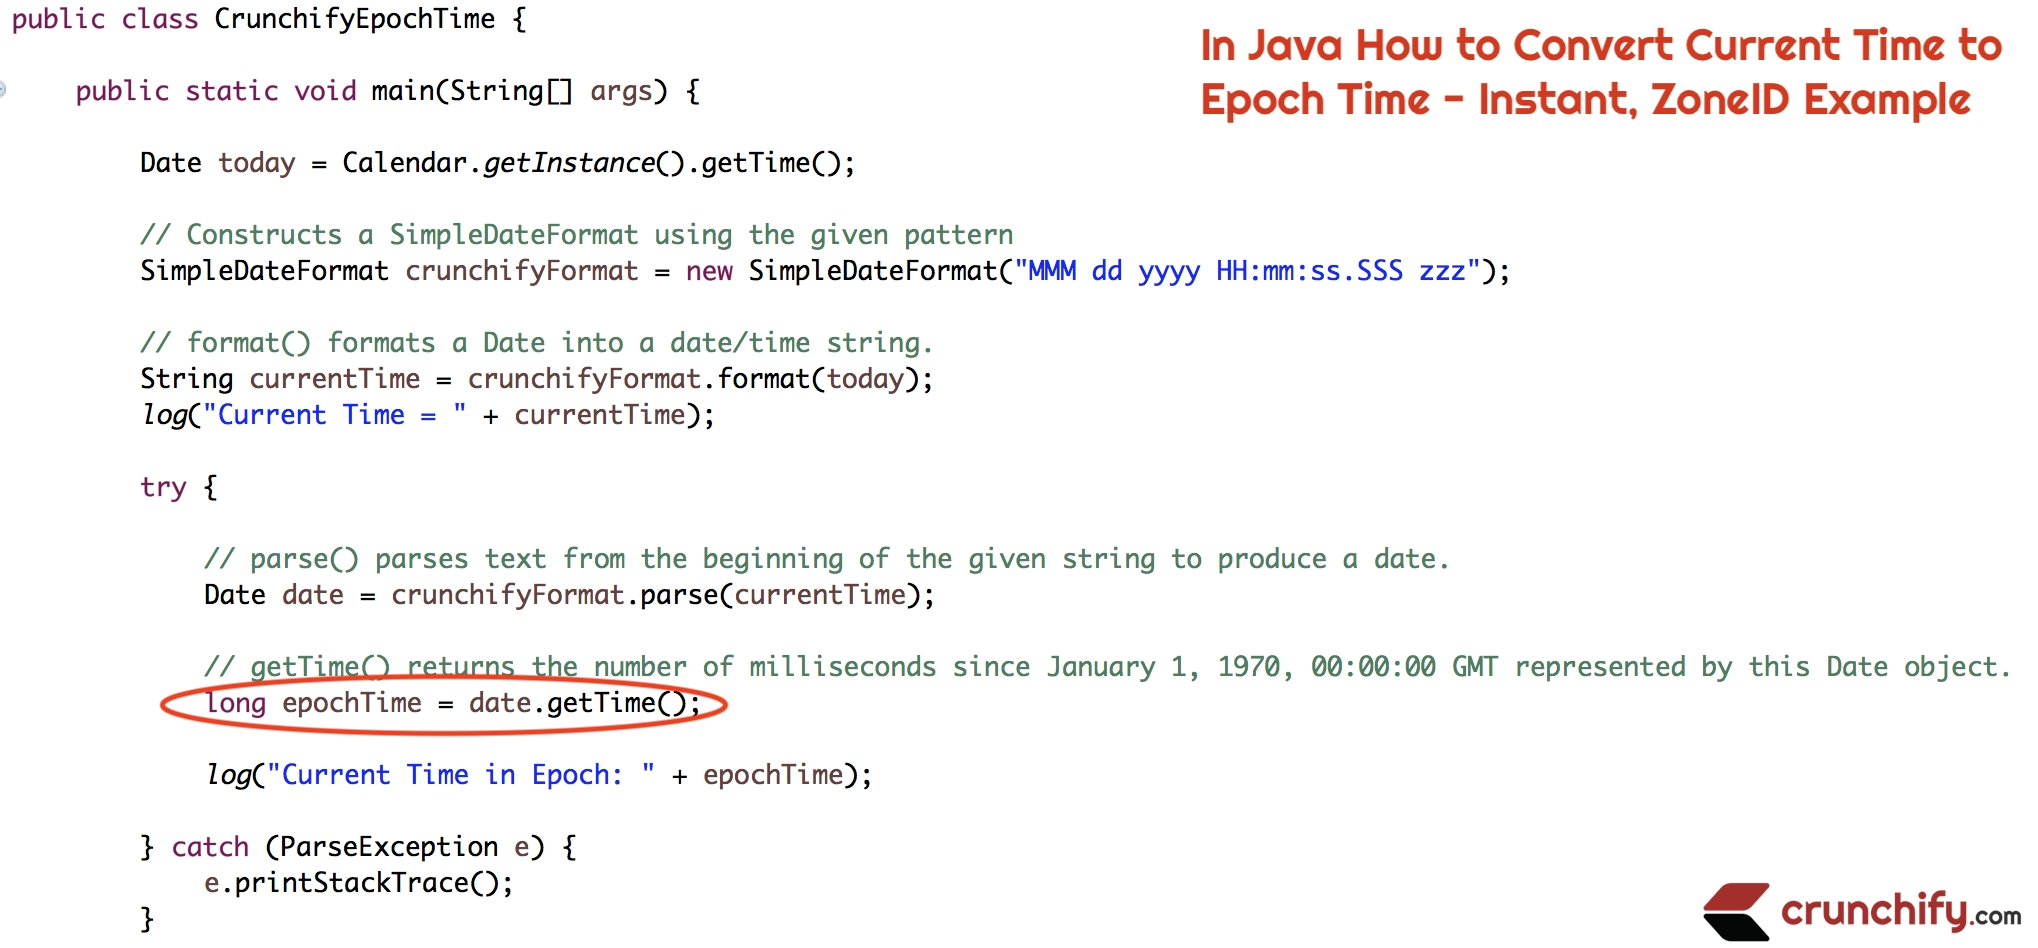 In Java How To Convert Current Time To Epoch Time - Instant